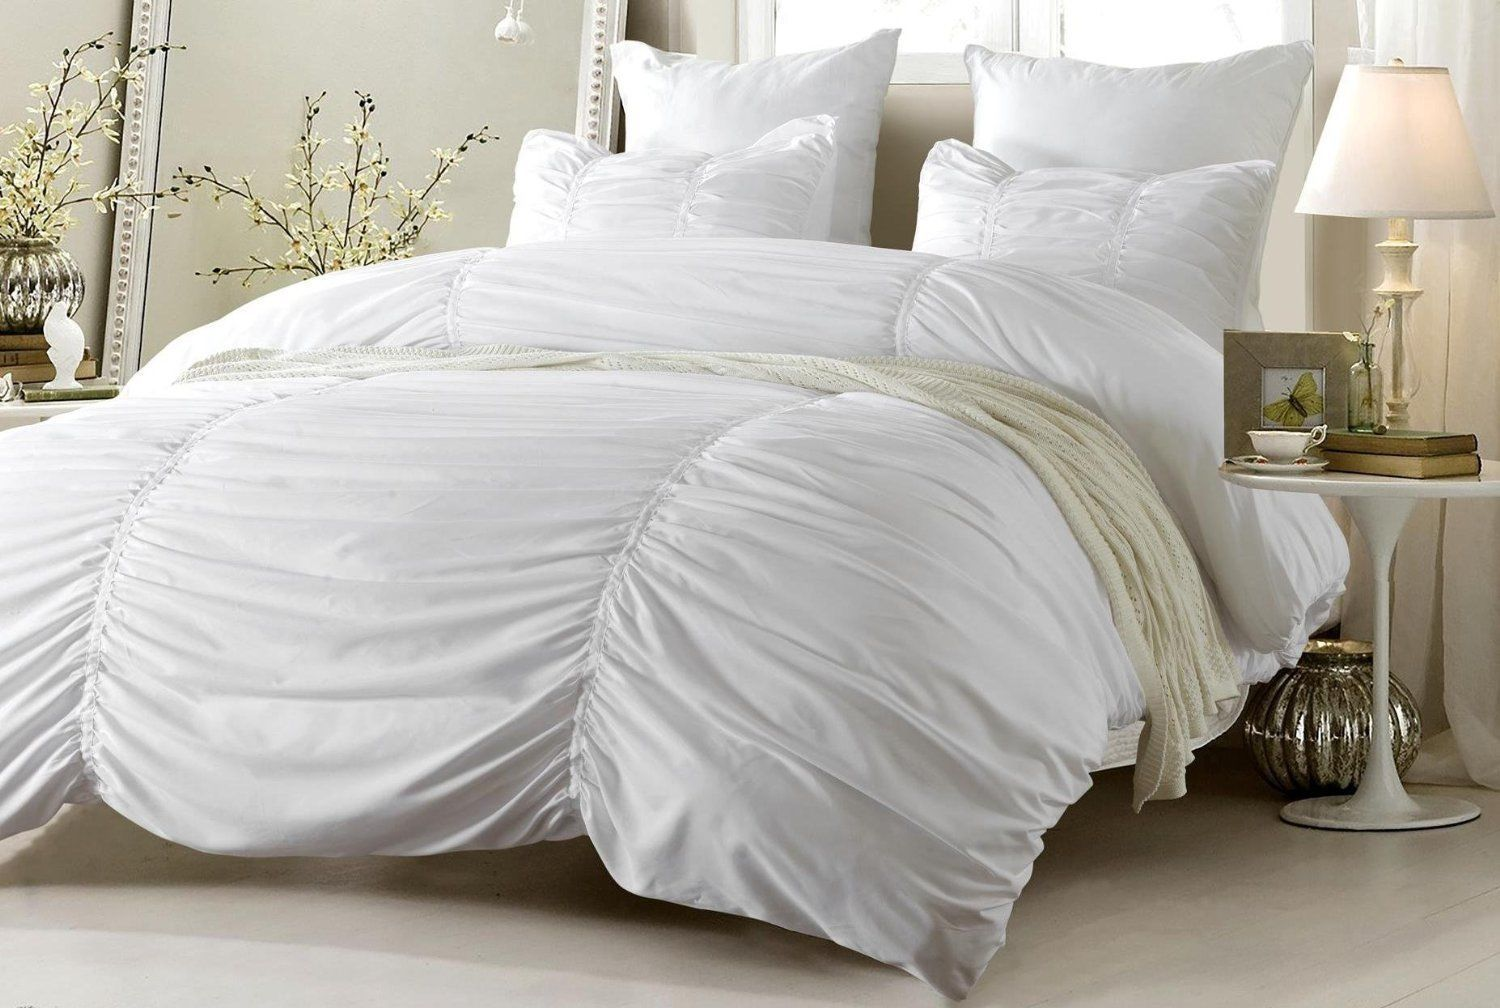 White Ruched Design Bedding Set Includes Comforter Set Or Duvet